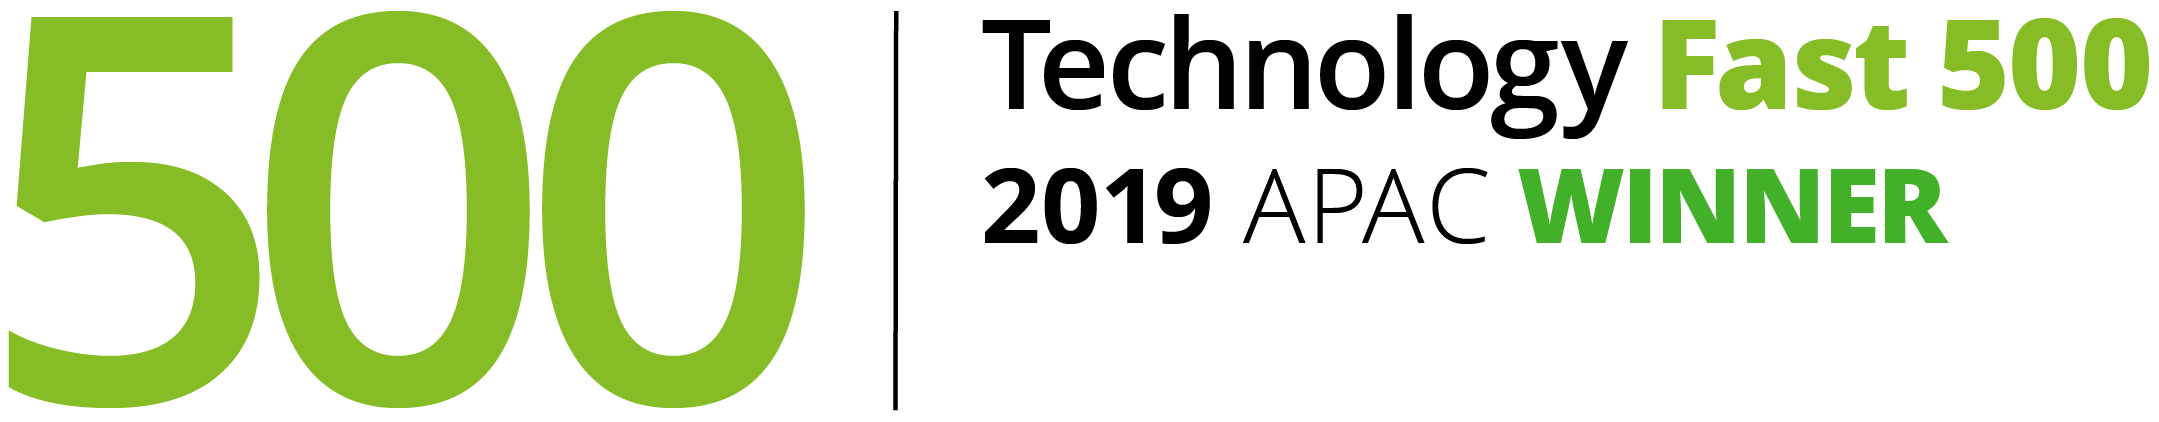 2019 Deloitte Asia Pacific Technology Fast 500